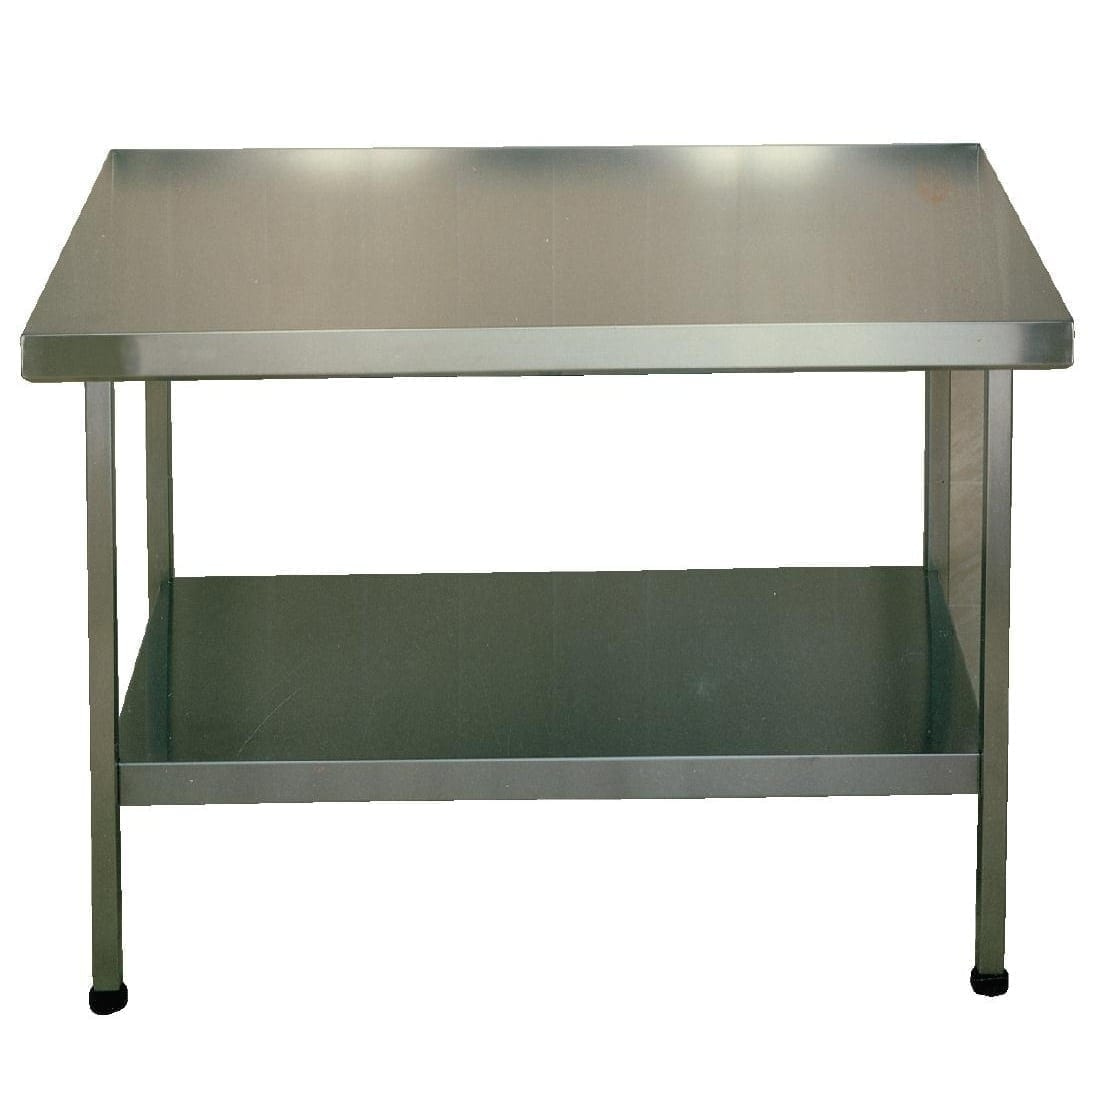 Sissons Centre Table St/St - 1800x650mm (Direct)-0